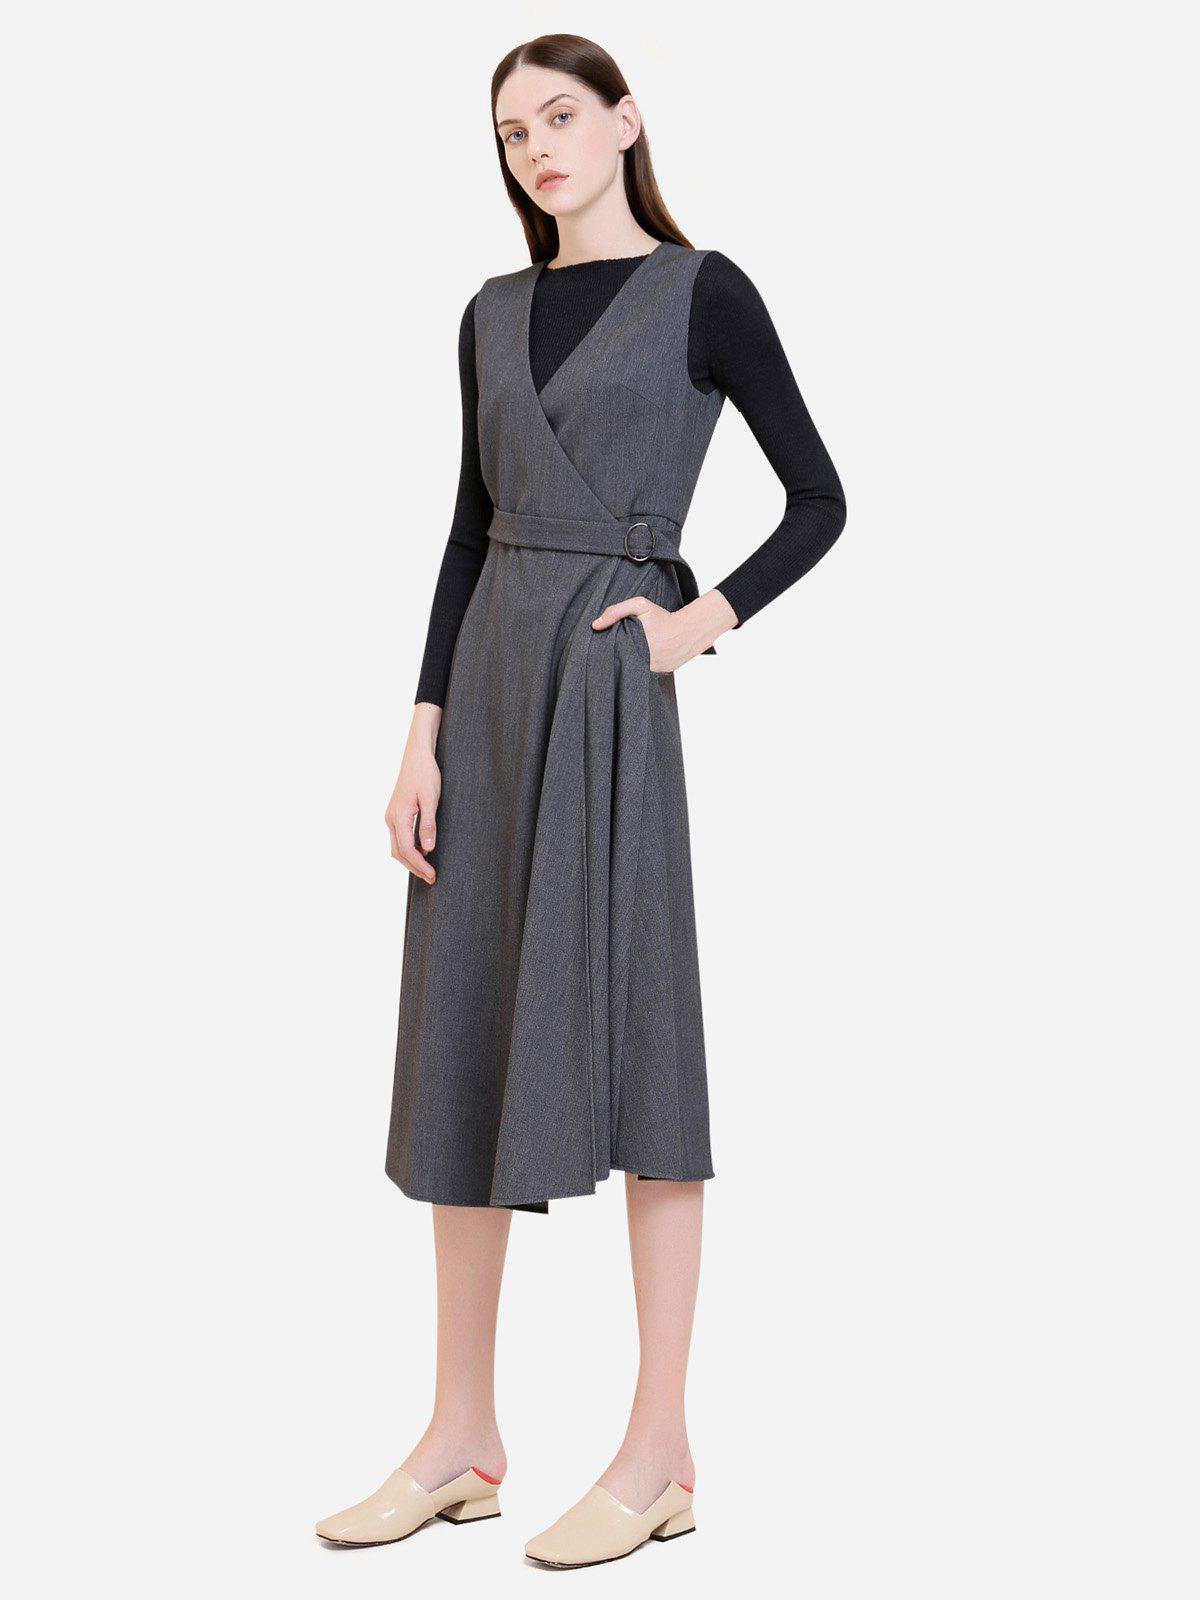 Fancy ZAN.STYLE Sleeveless Belted Dress Coat